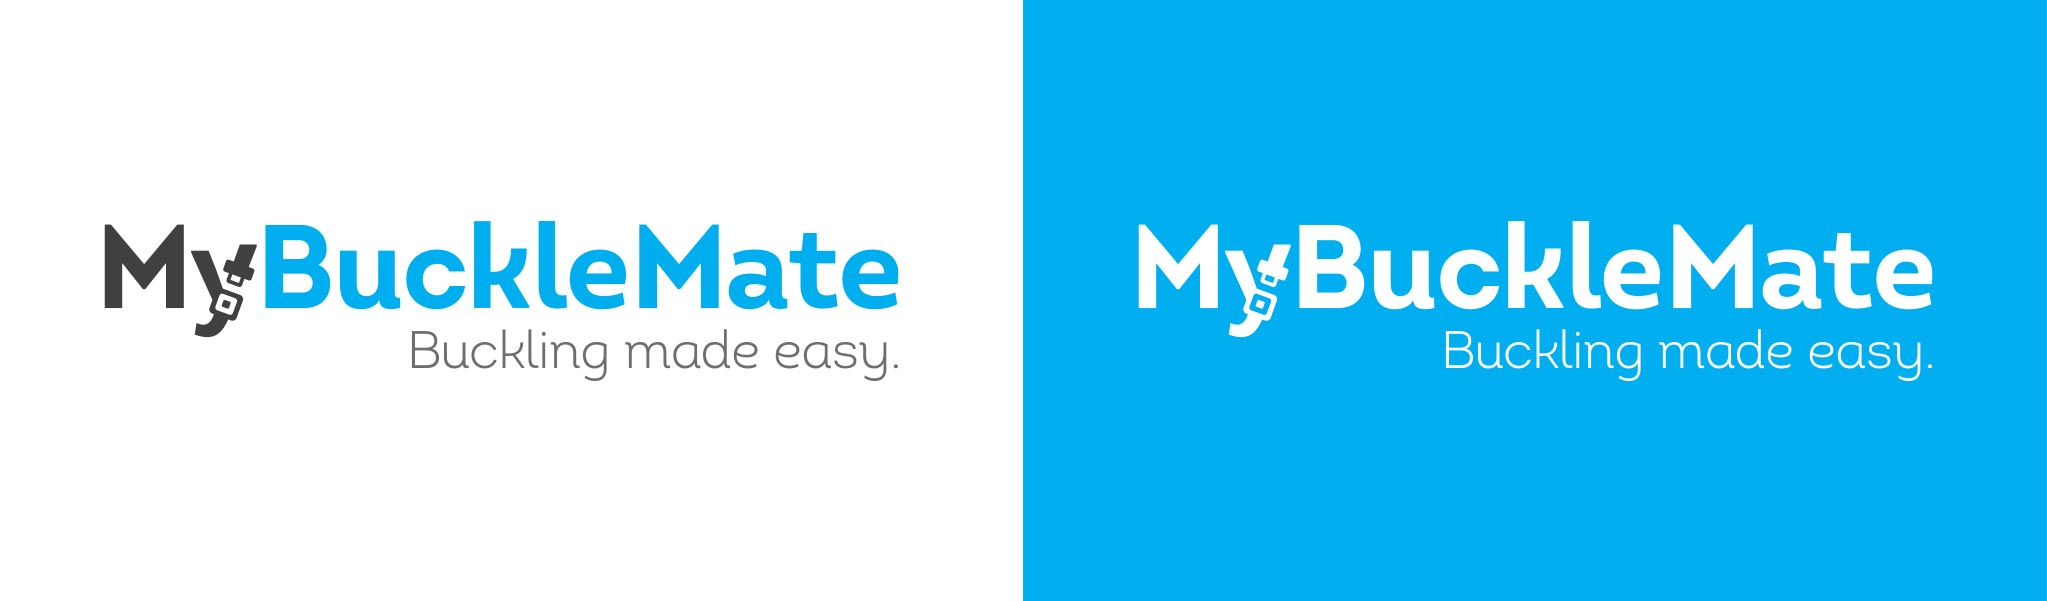 examples of MyBuckleMate logo design